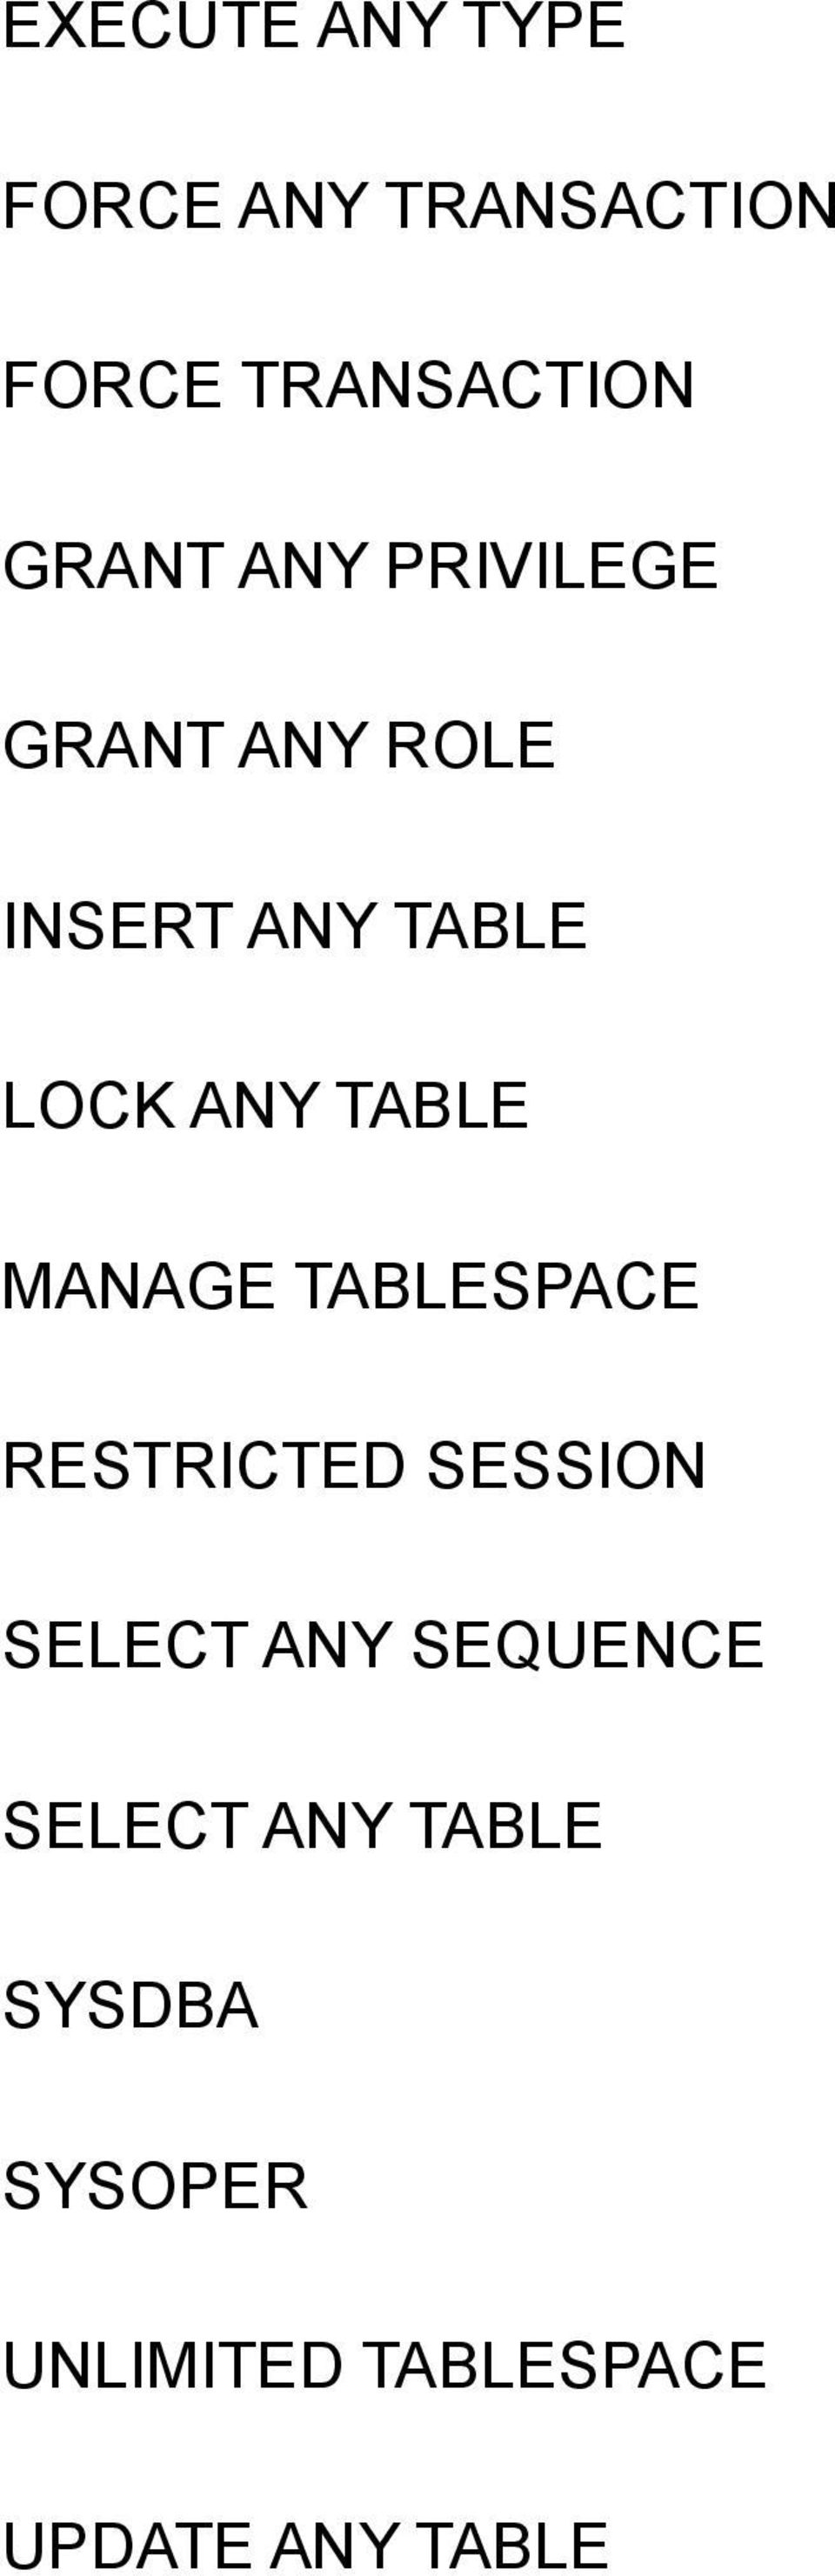 MANAGE TABLESPACE RESTRICTED SESSION SELECT ANY SEQUENCE